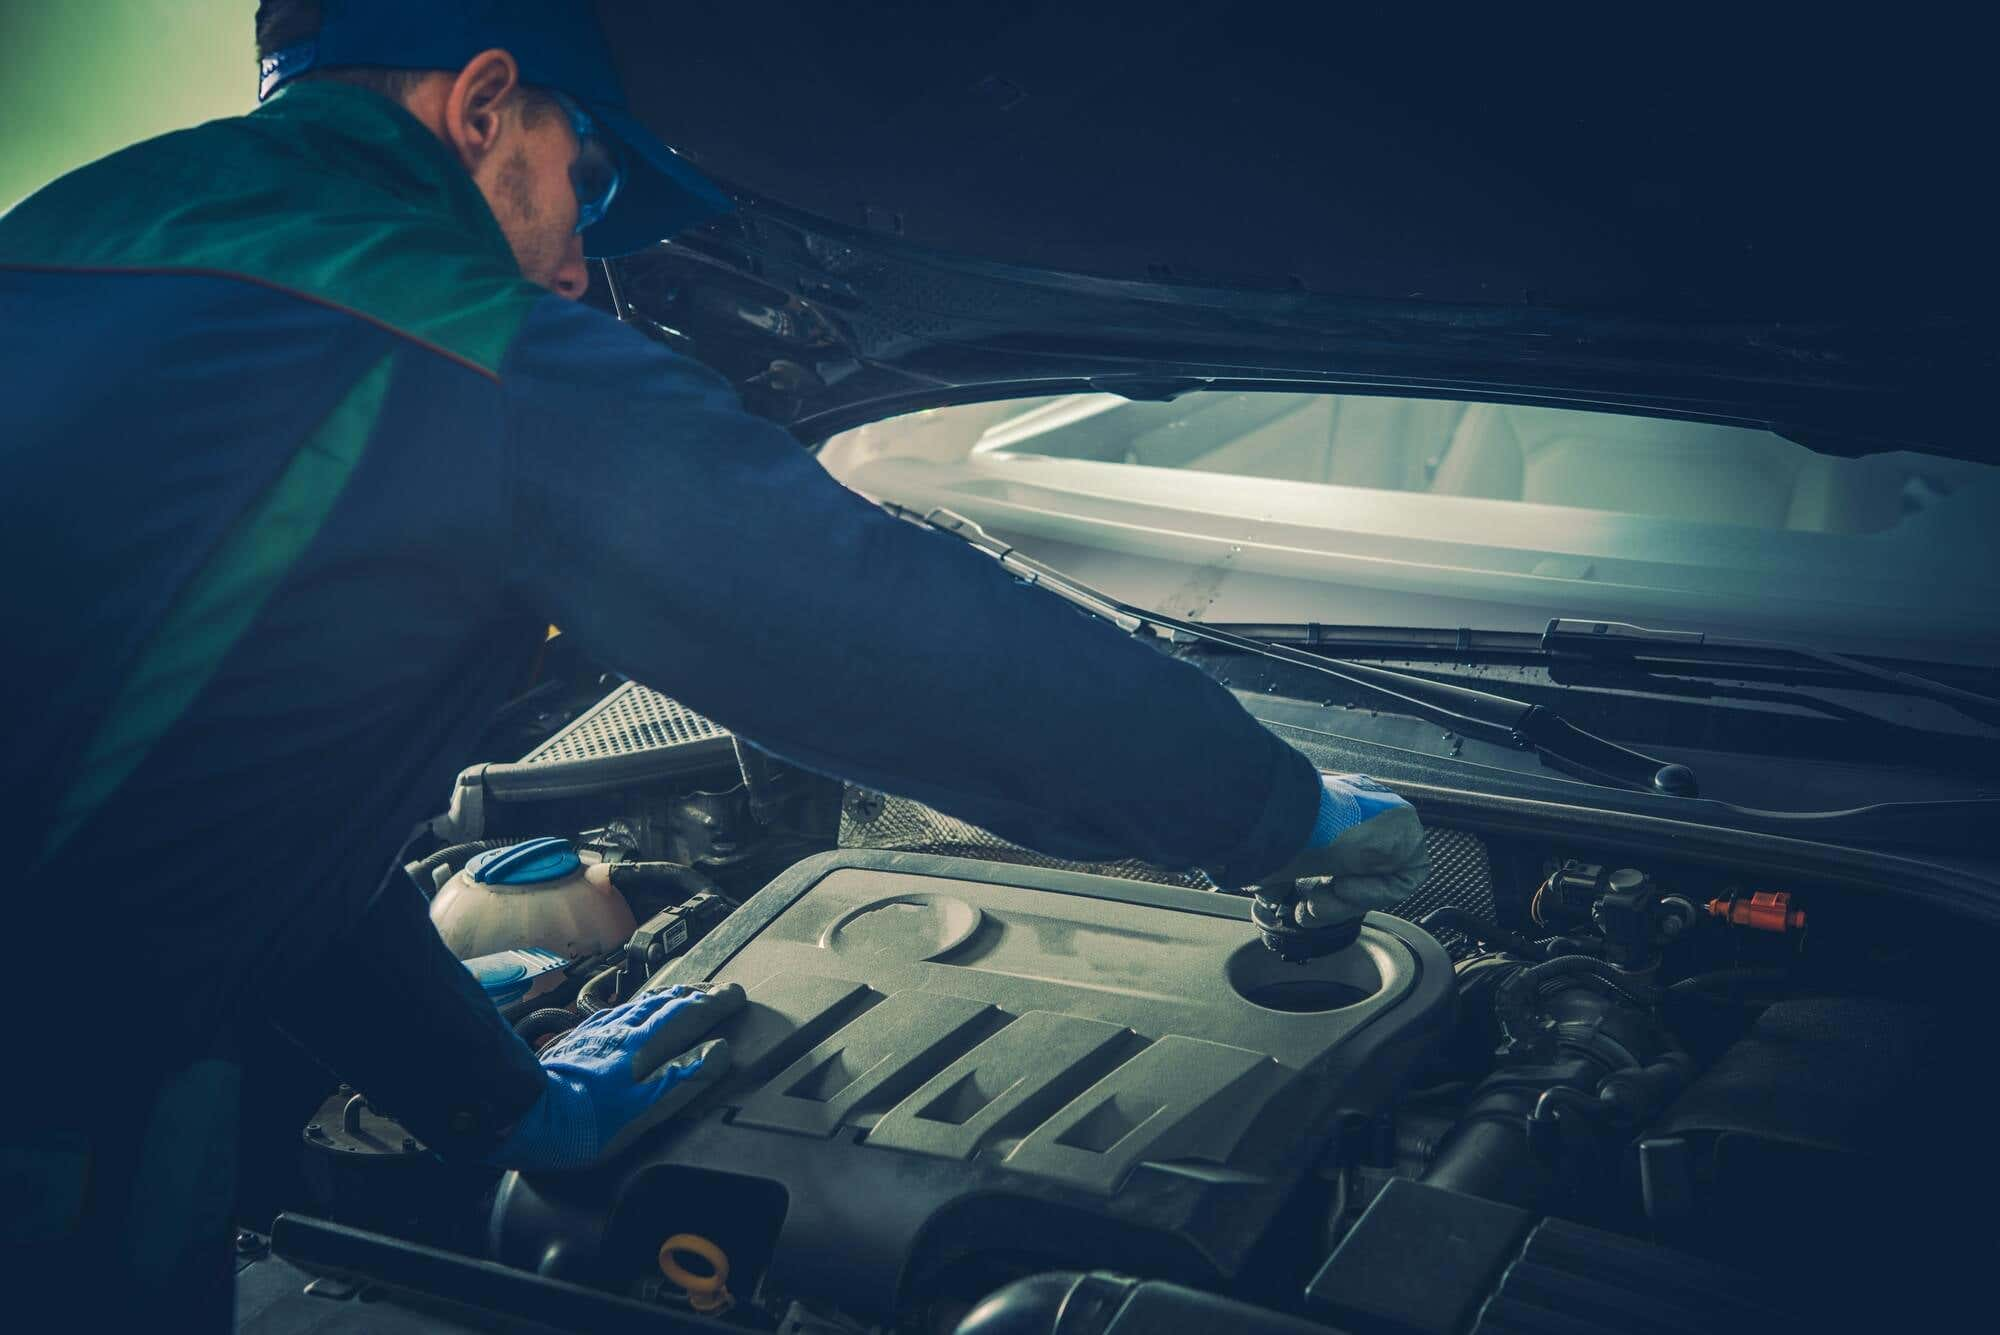 Vehicle Fluids Maintenance by Professional Car Mechanic